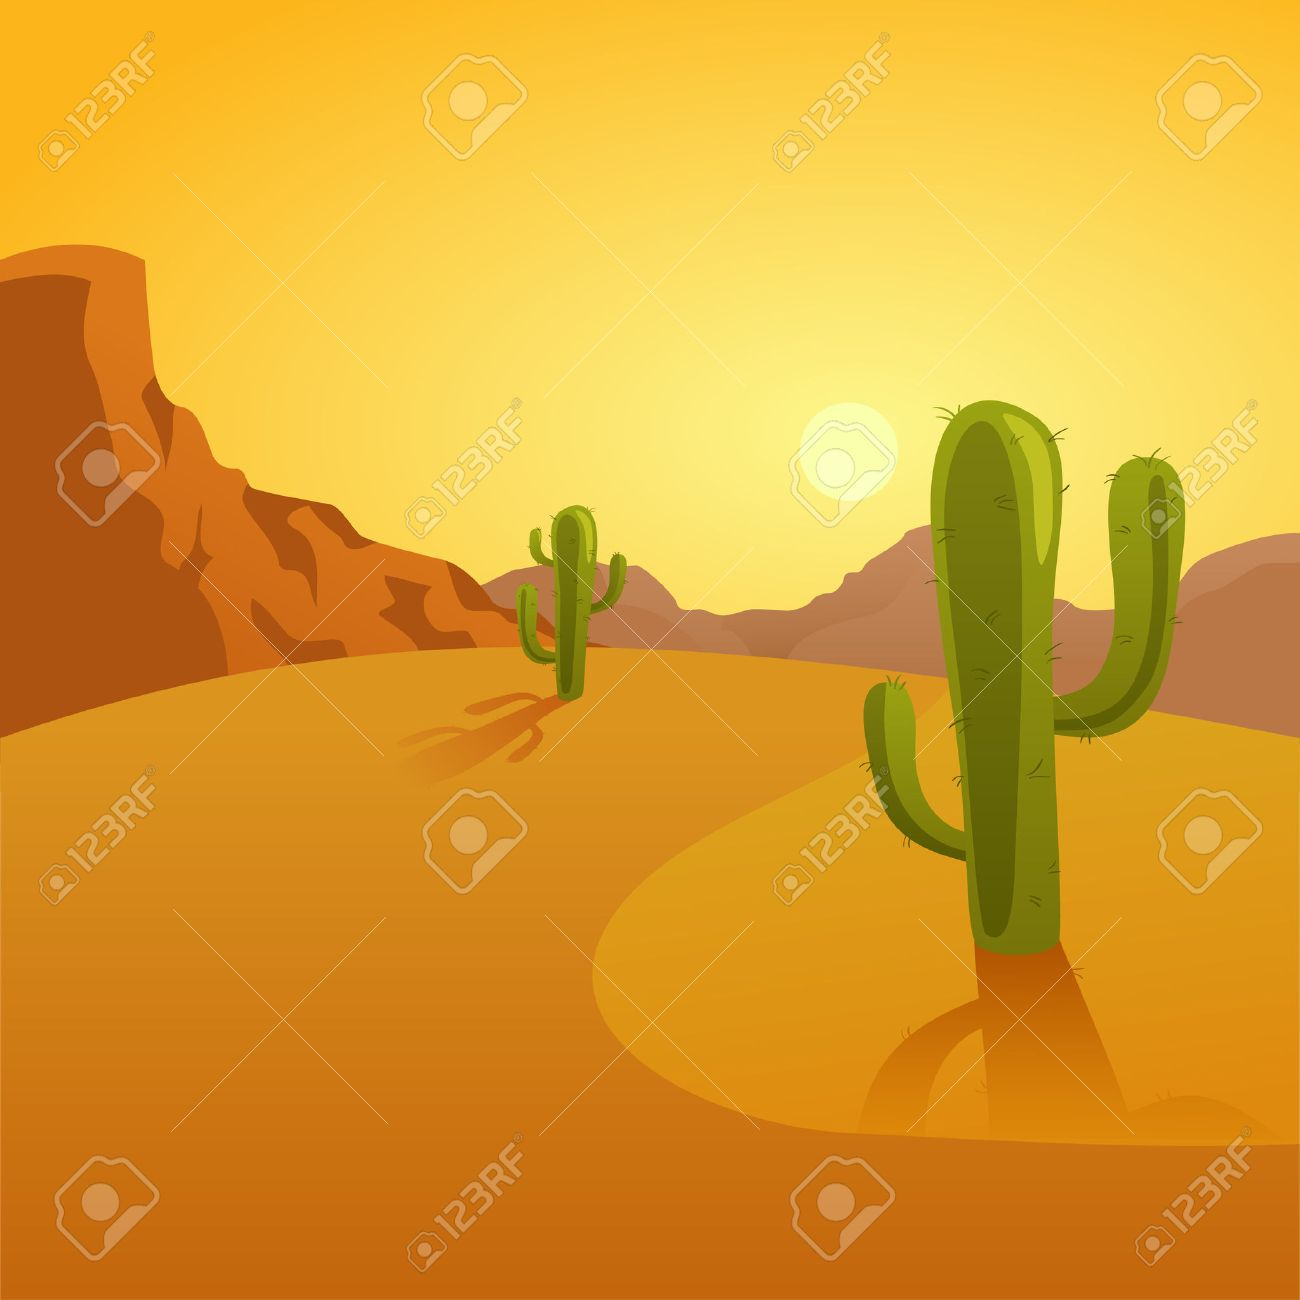 Cartoon Illustration Of A Desert Background With Cactuses Royalty